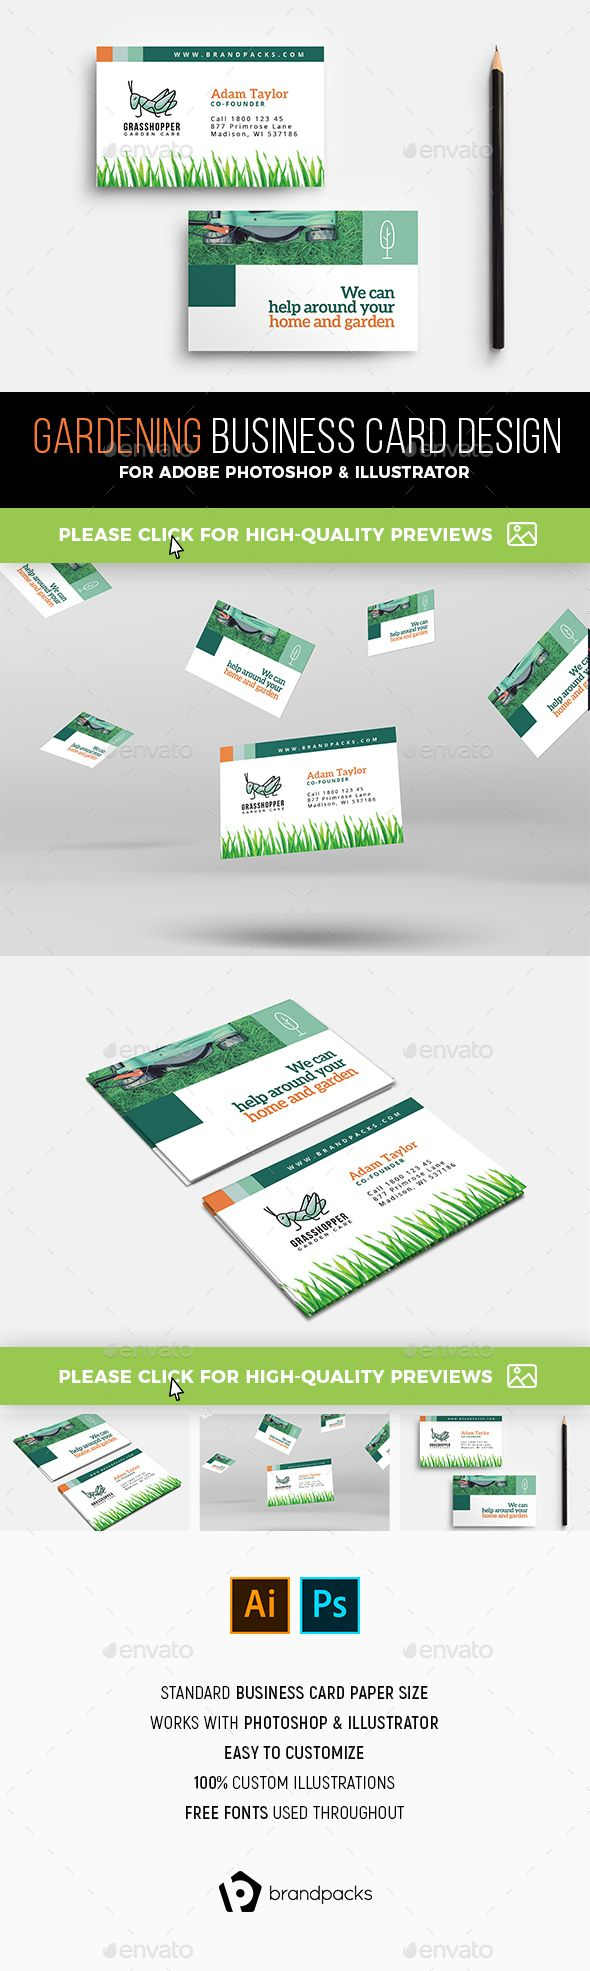 Gardening Business Card Template Free Business Card Templates Business Card Template Design Business Card Template